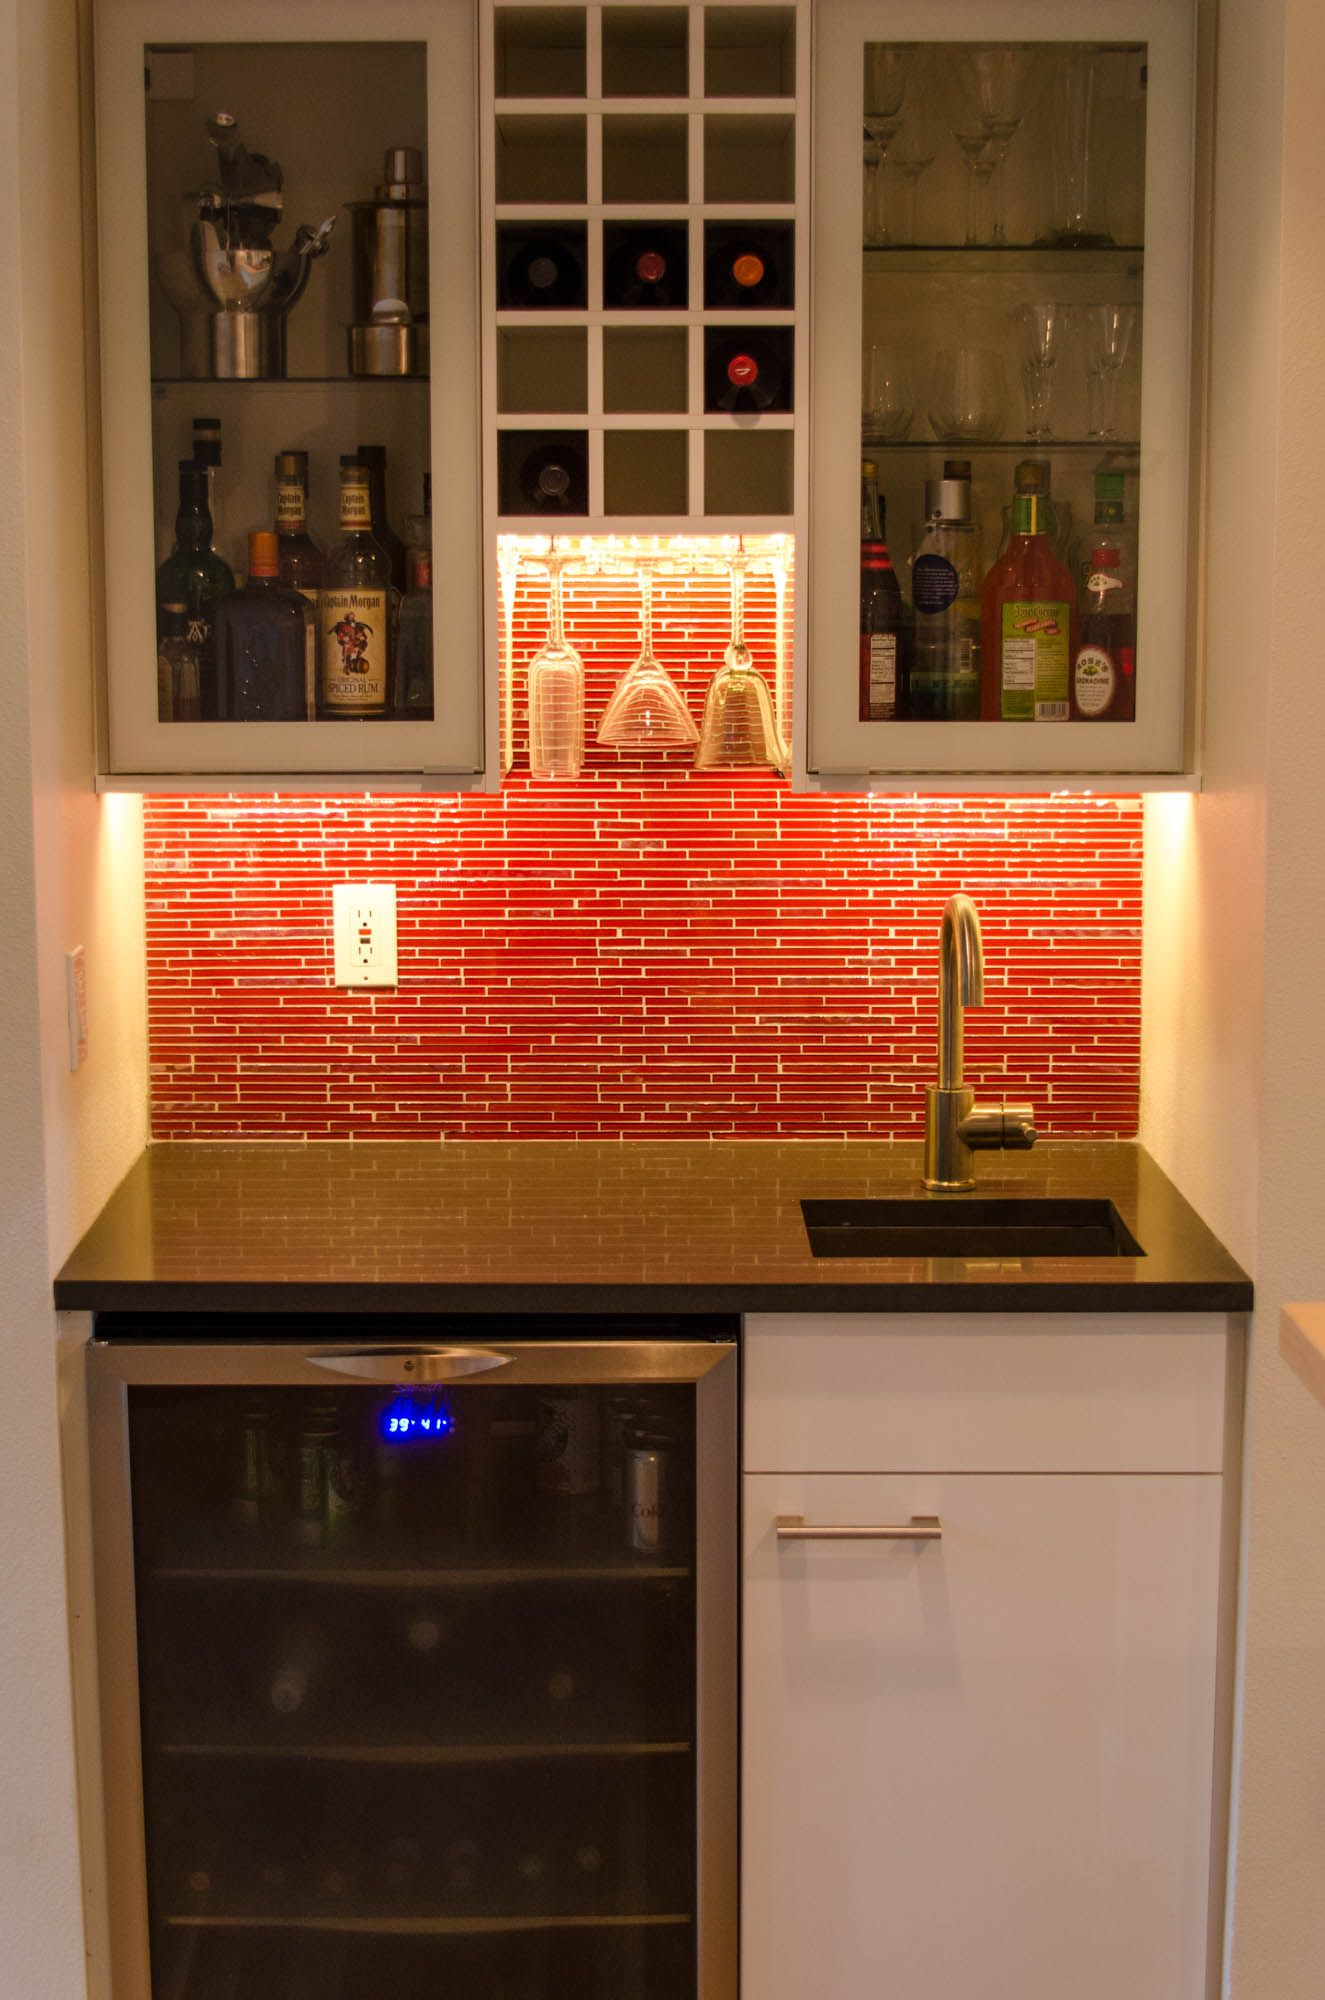 Ikea Wet Bar Cabinets With Sink In Small Kitche Red Backsplash Idea